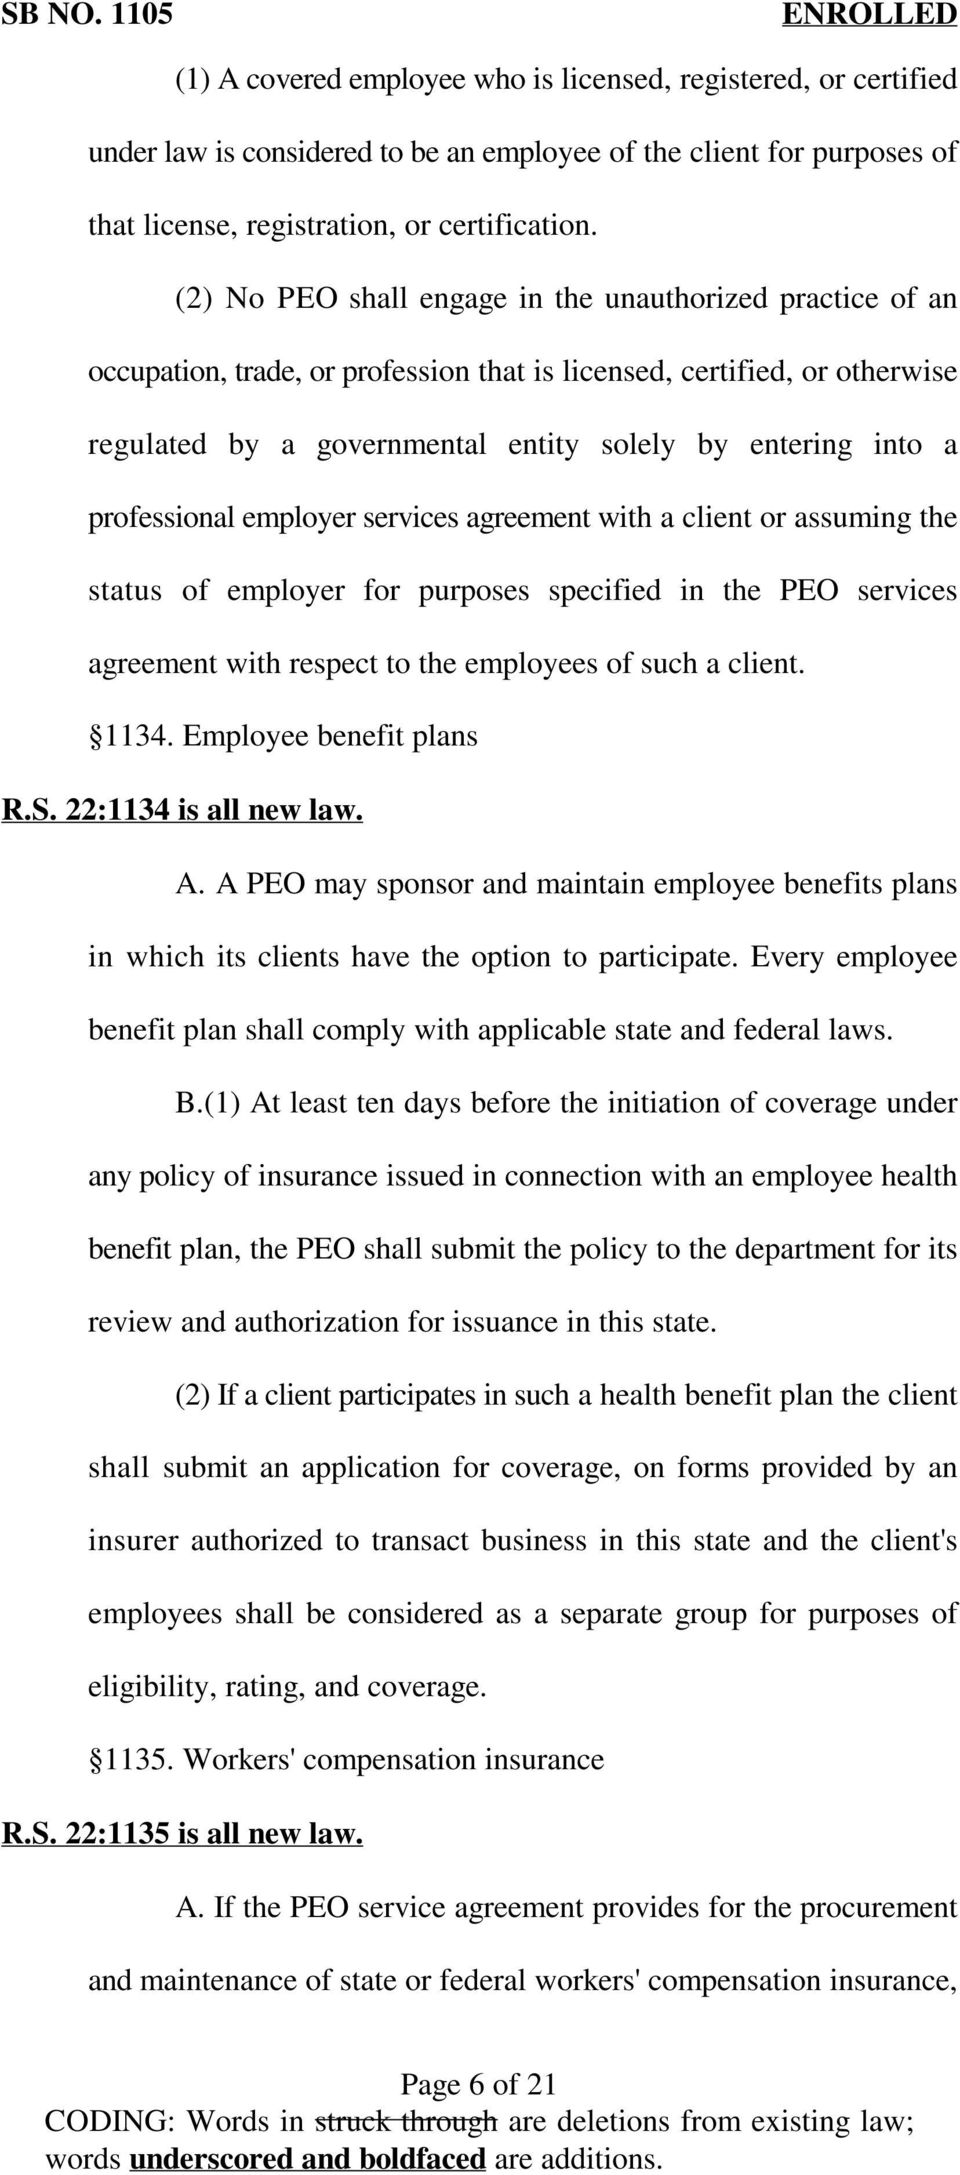 professional employer services agreement with a client or assuming the status of employer for purposes specified in the PEO services agreement with respect to the employees of such a client. 1134.